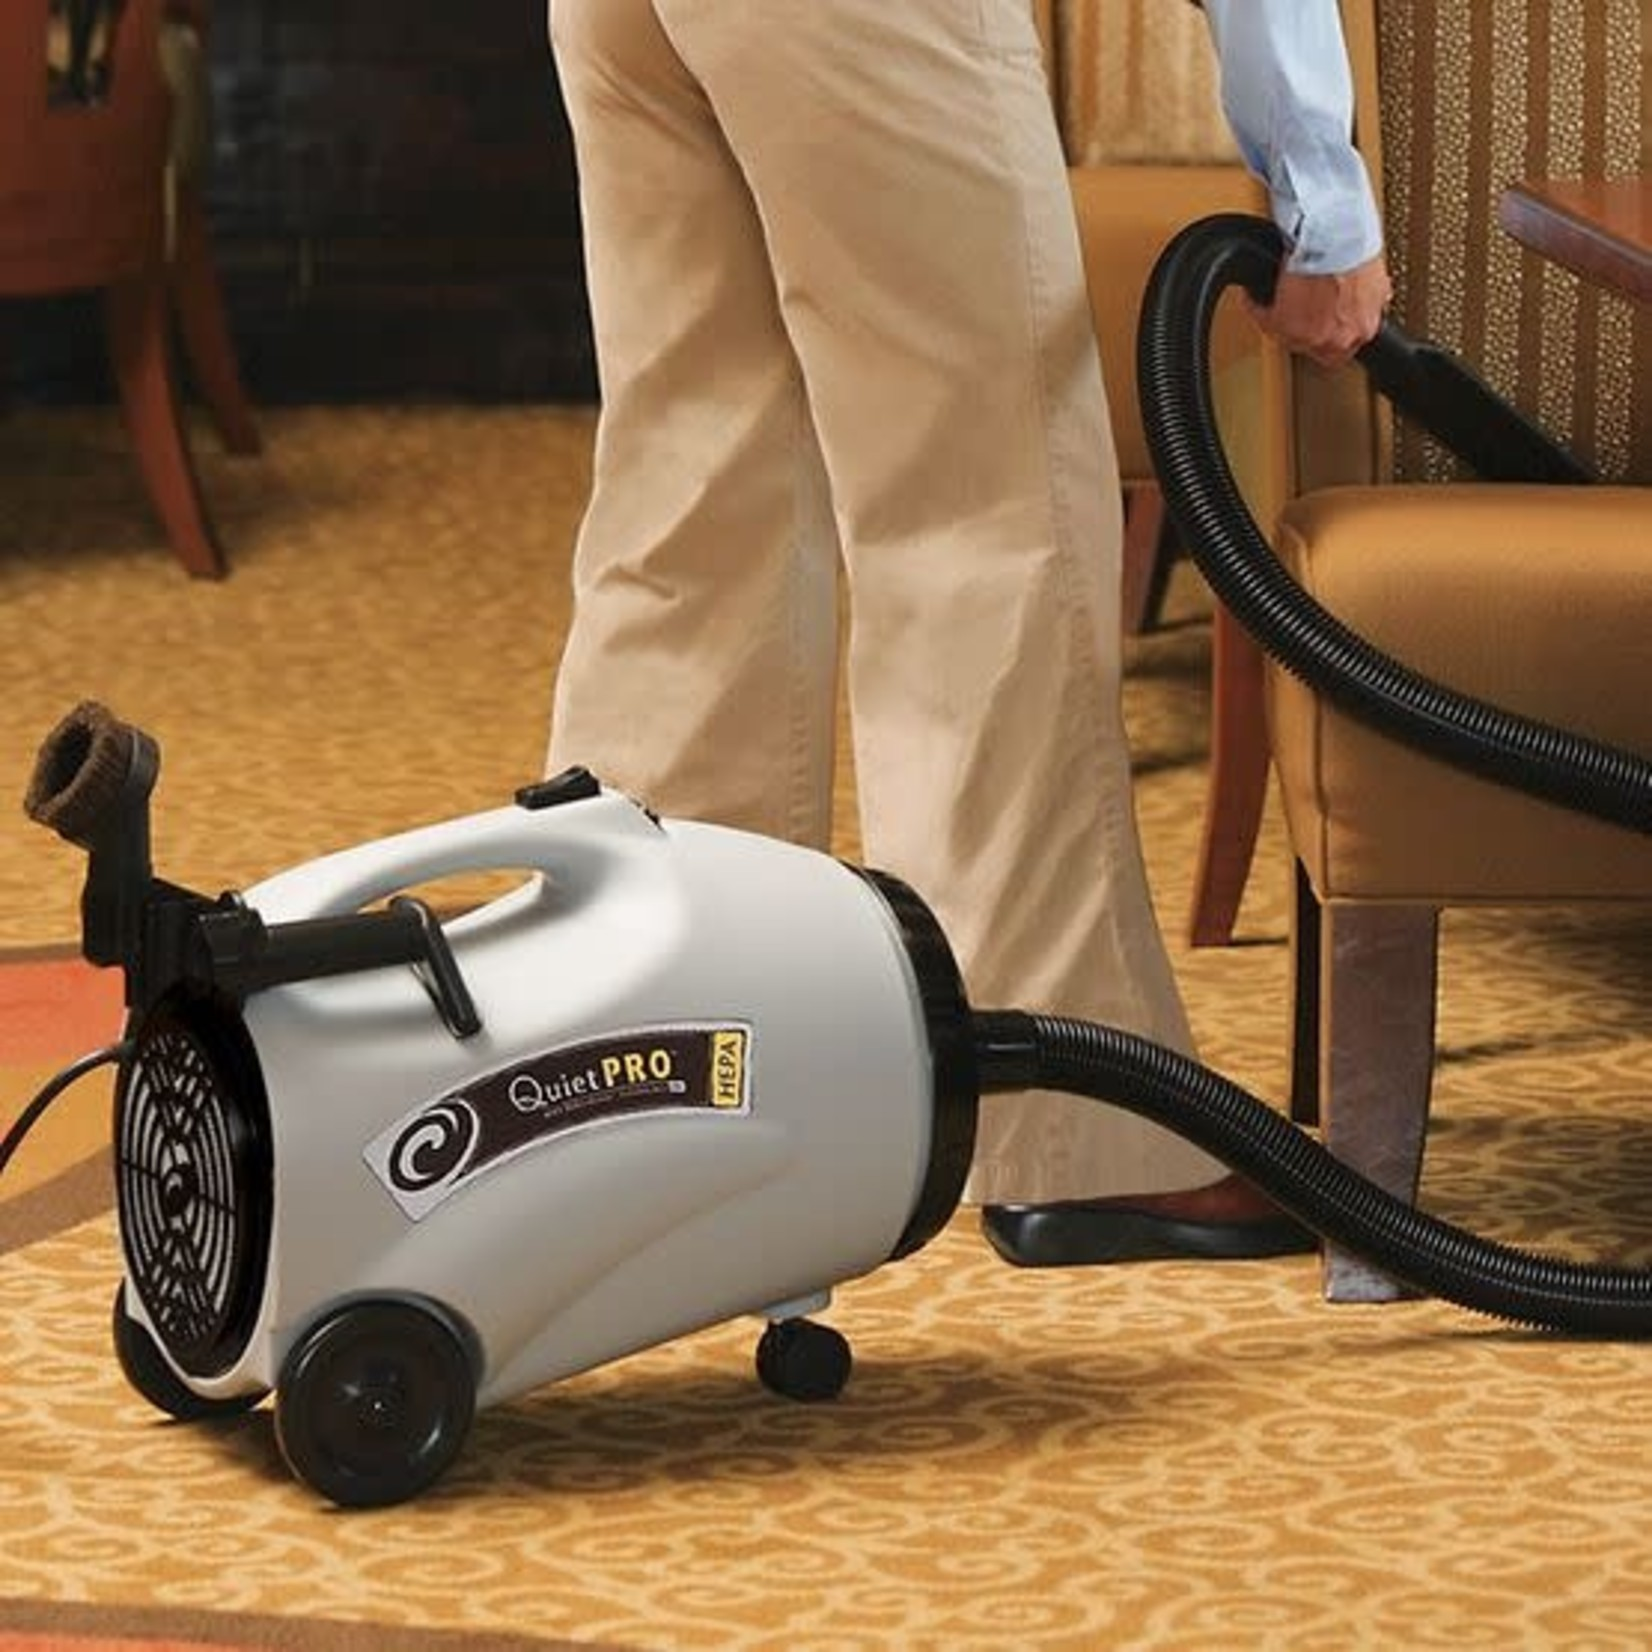 ProTeam Commercial Vacuums ProTeam QuietPro CN HEPA 10 qt. Canister Vacuum w/ Xover Multi-Surface Telescoping Wand Tool Kit